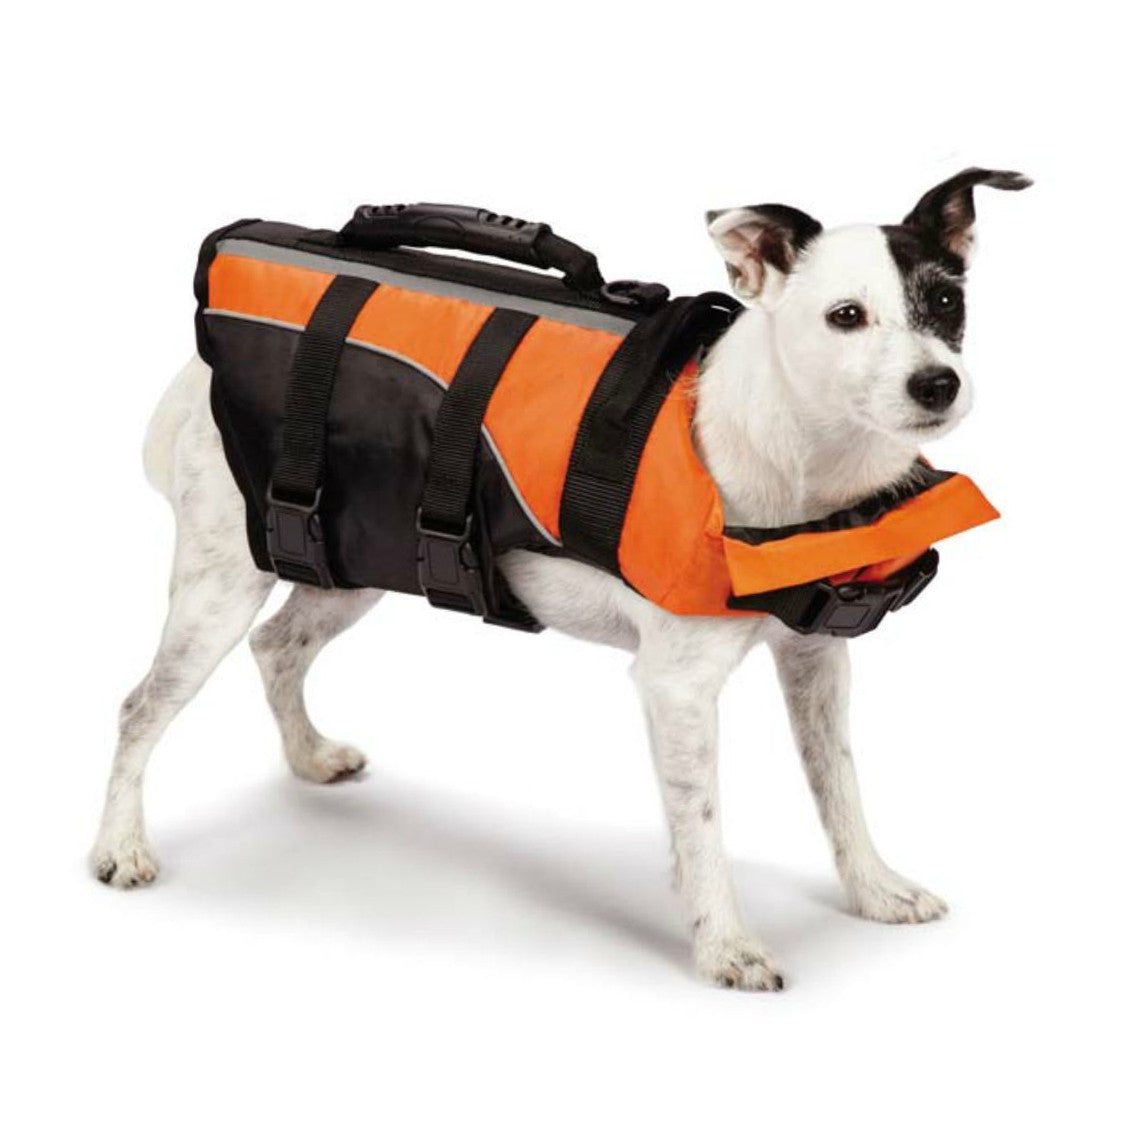 Guardian Gear Deluxe Pet Preserver in Orange